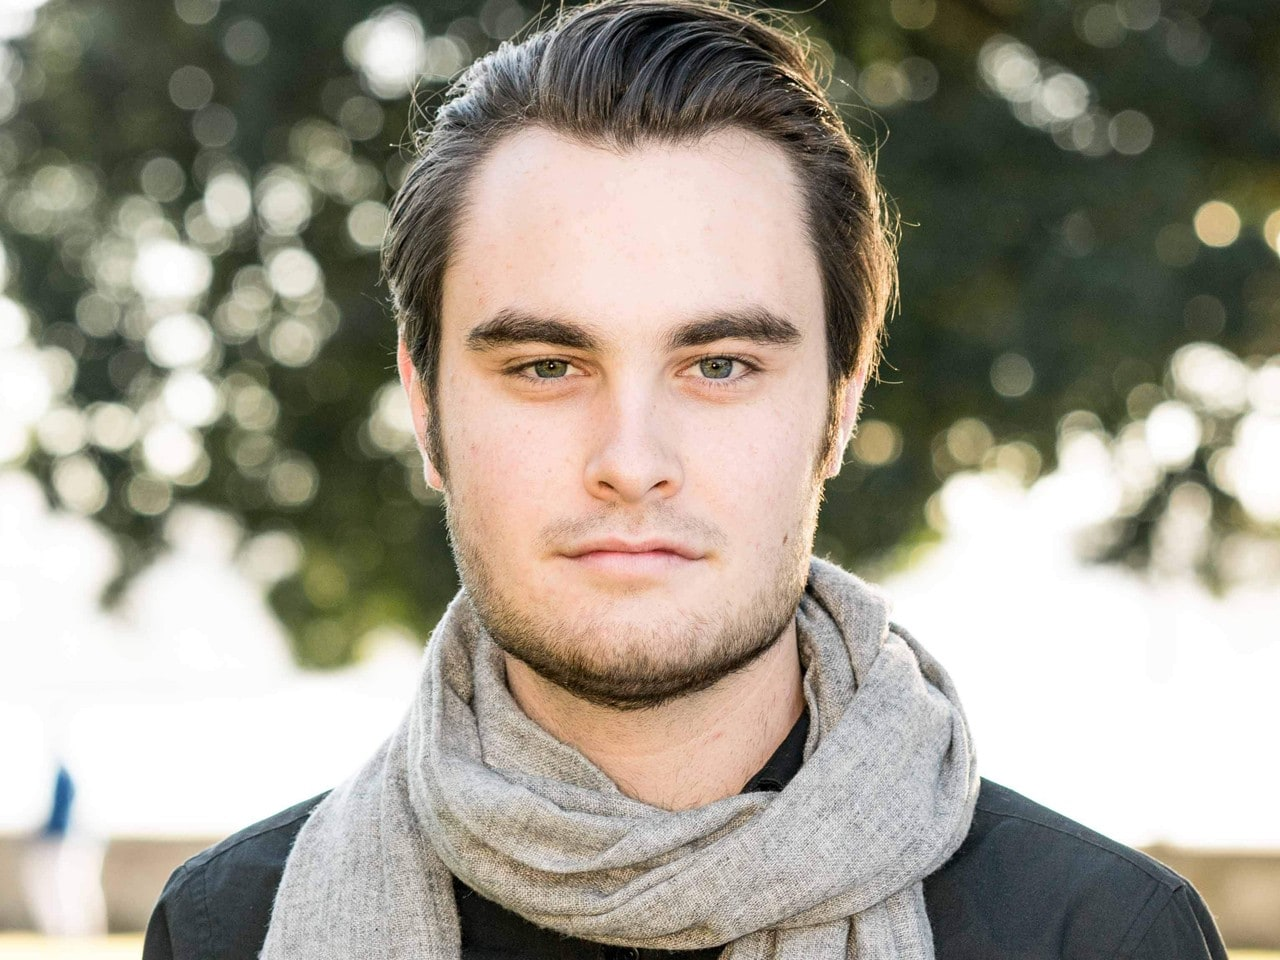 Male musician with scarf